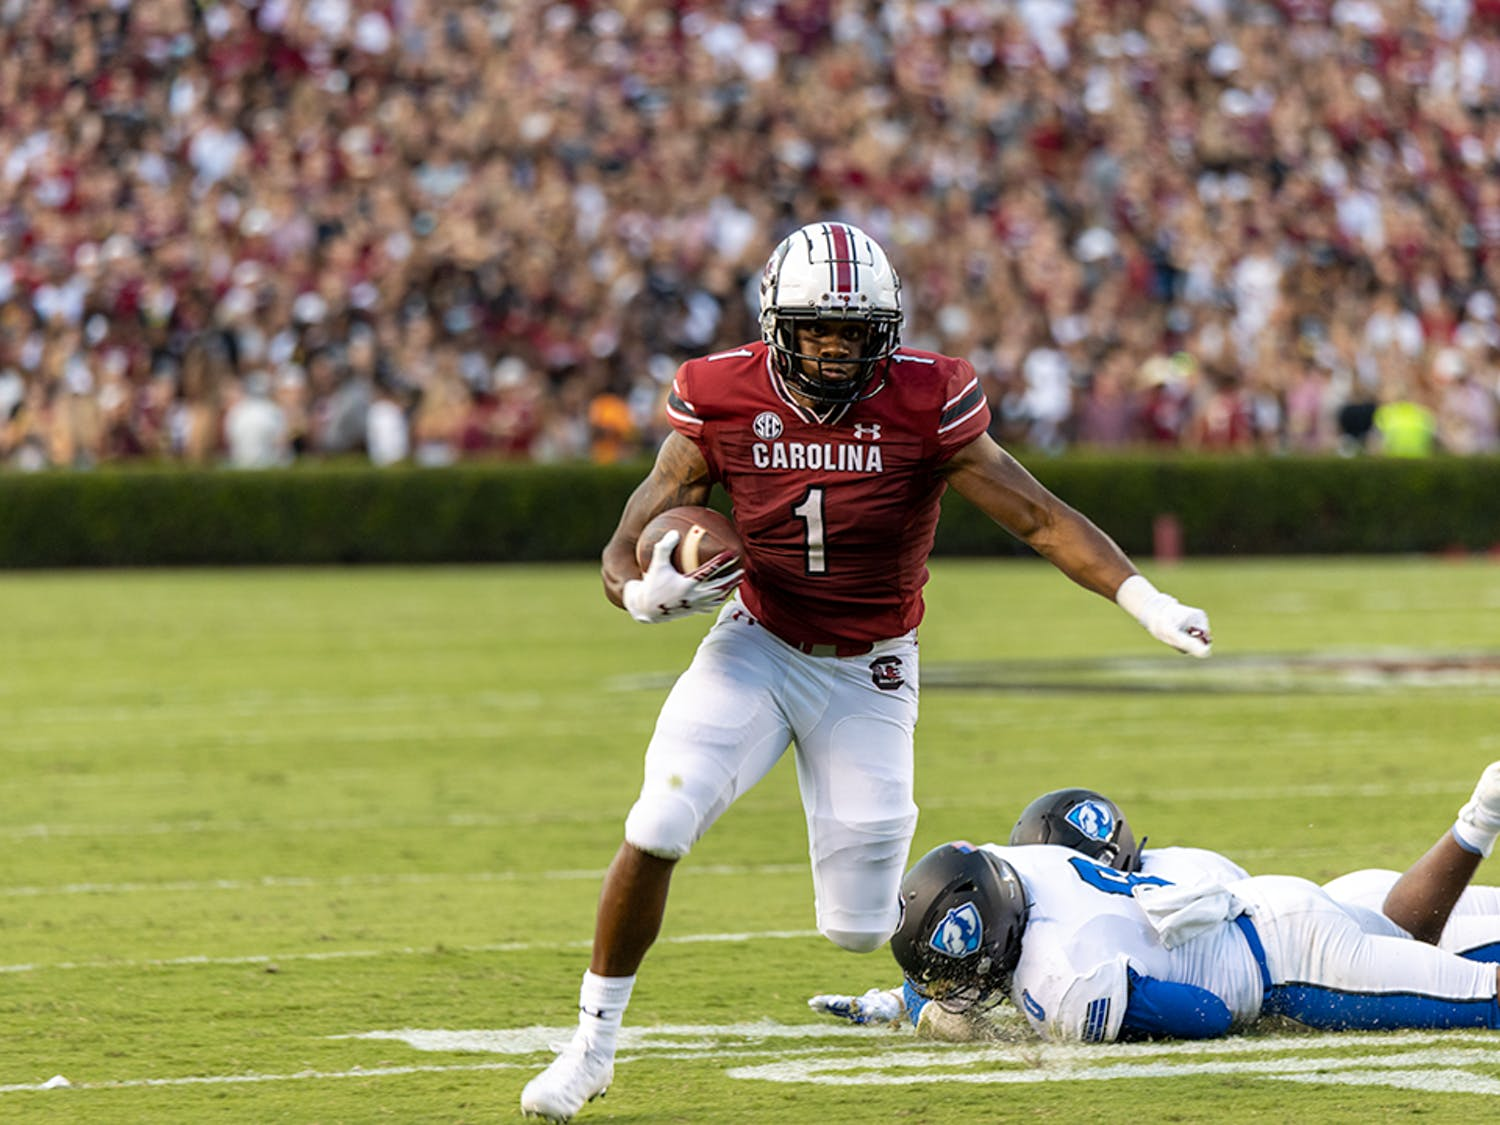 Redshirt freshman running back Marshawn Lloyd evades a tackle attempt made by an Eastern Illinois player. Lloyd made the first down for the Gamecocks.